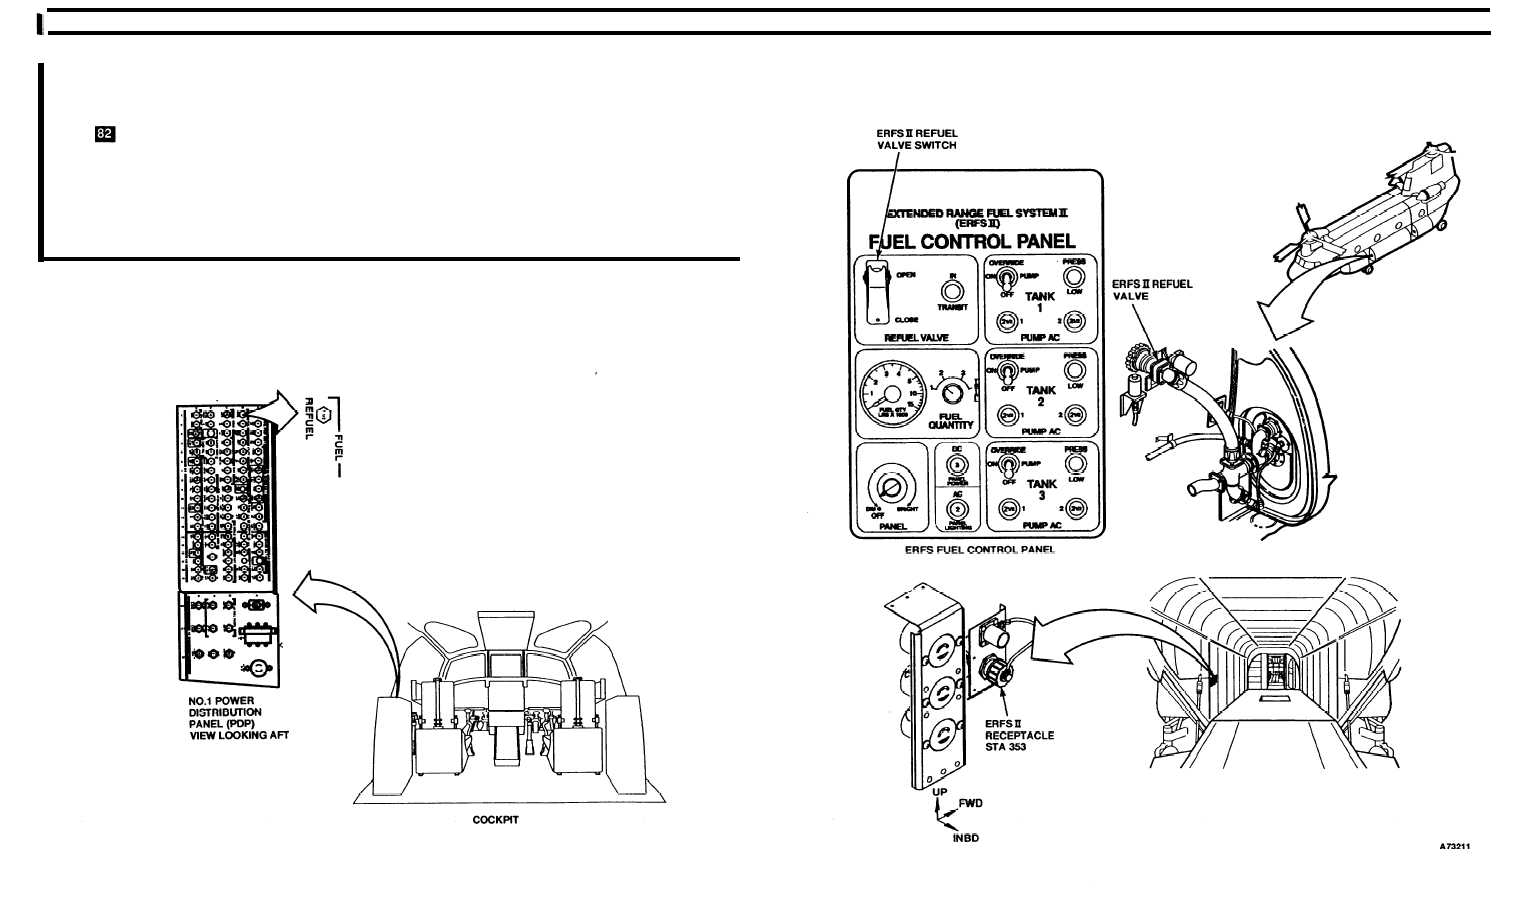 Wiring Diagram Z 560 Wiring Diagram And Schematics International 4900 Wiring-Diagram Ih 606 Wiring Diagram On Wiring Diagram For Farmall 460 Additionally Wiring Diagram Farmall 350 Get Free Image About Additionally Wiring